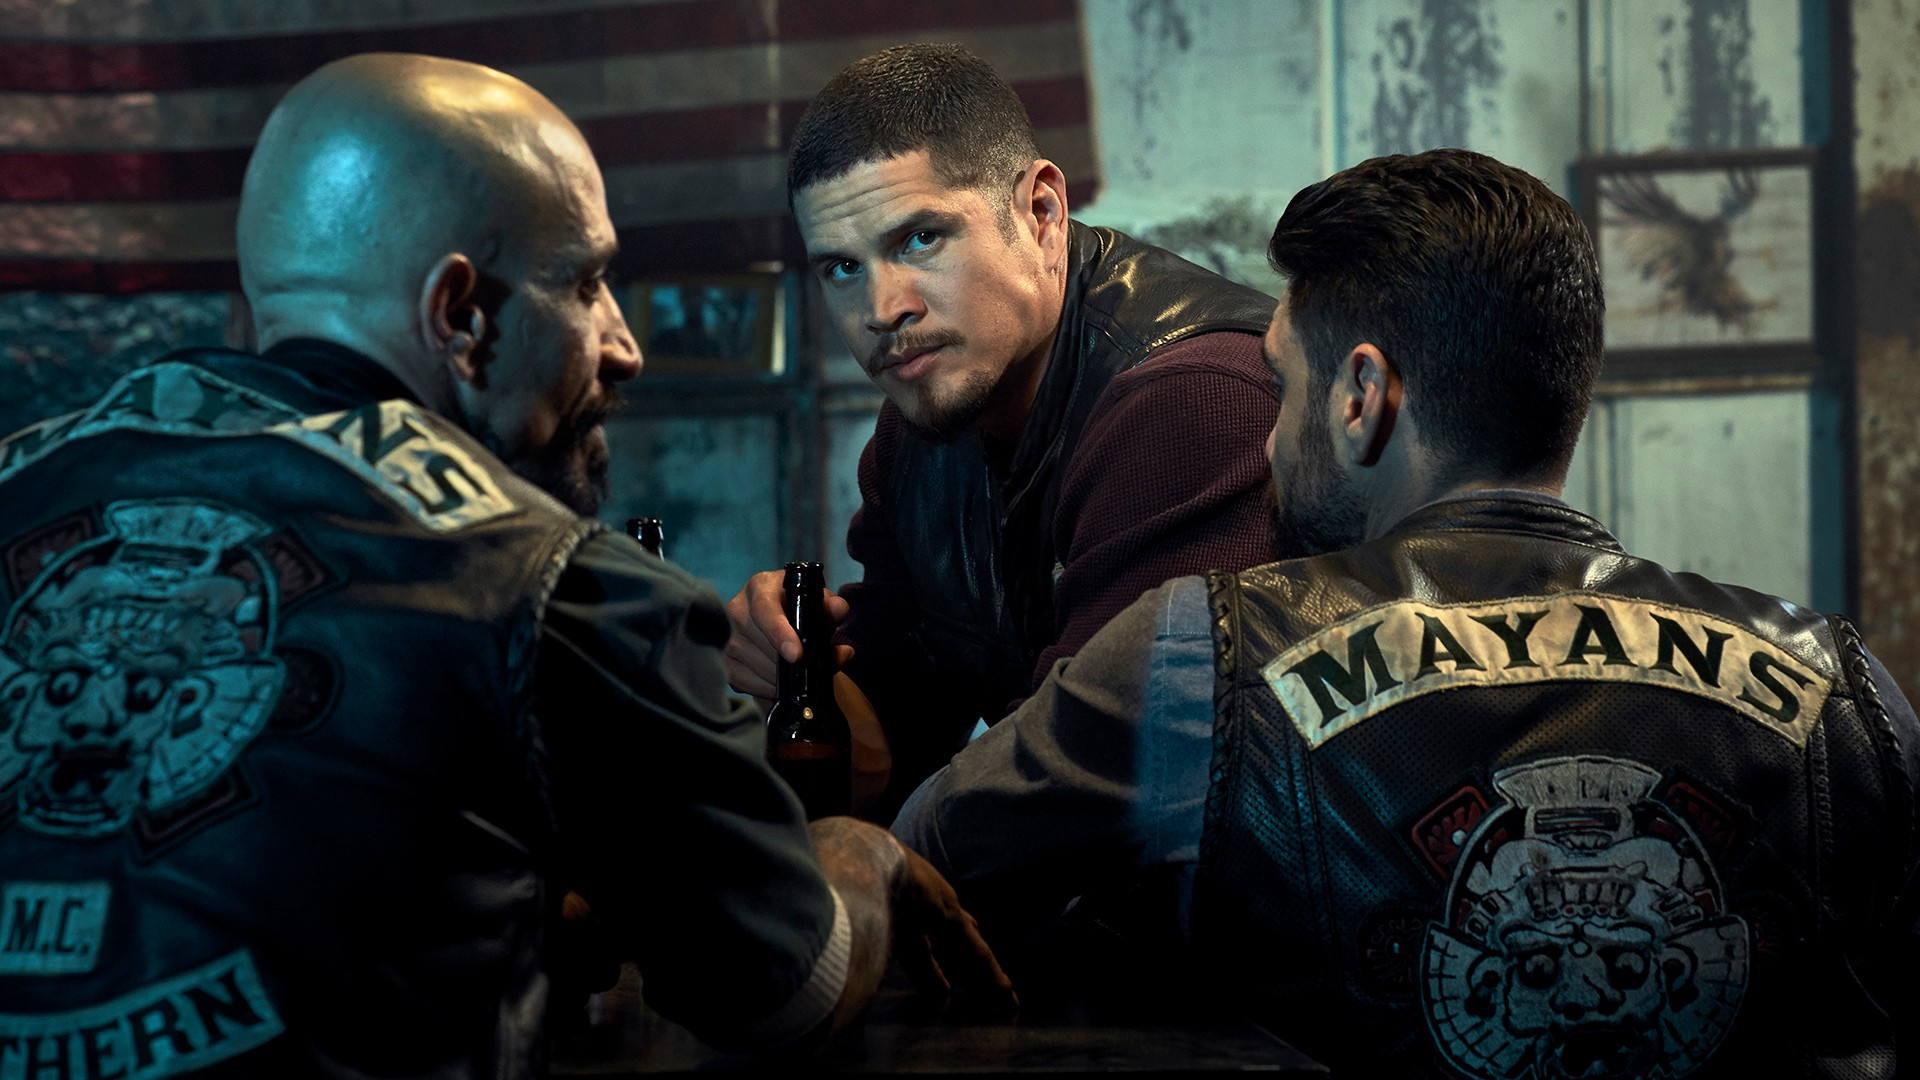 Mayans Mc Season 2 Episode Xbalanque Official On Fx